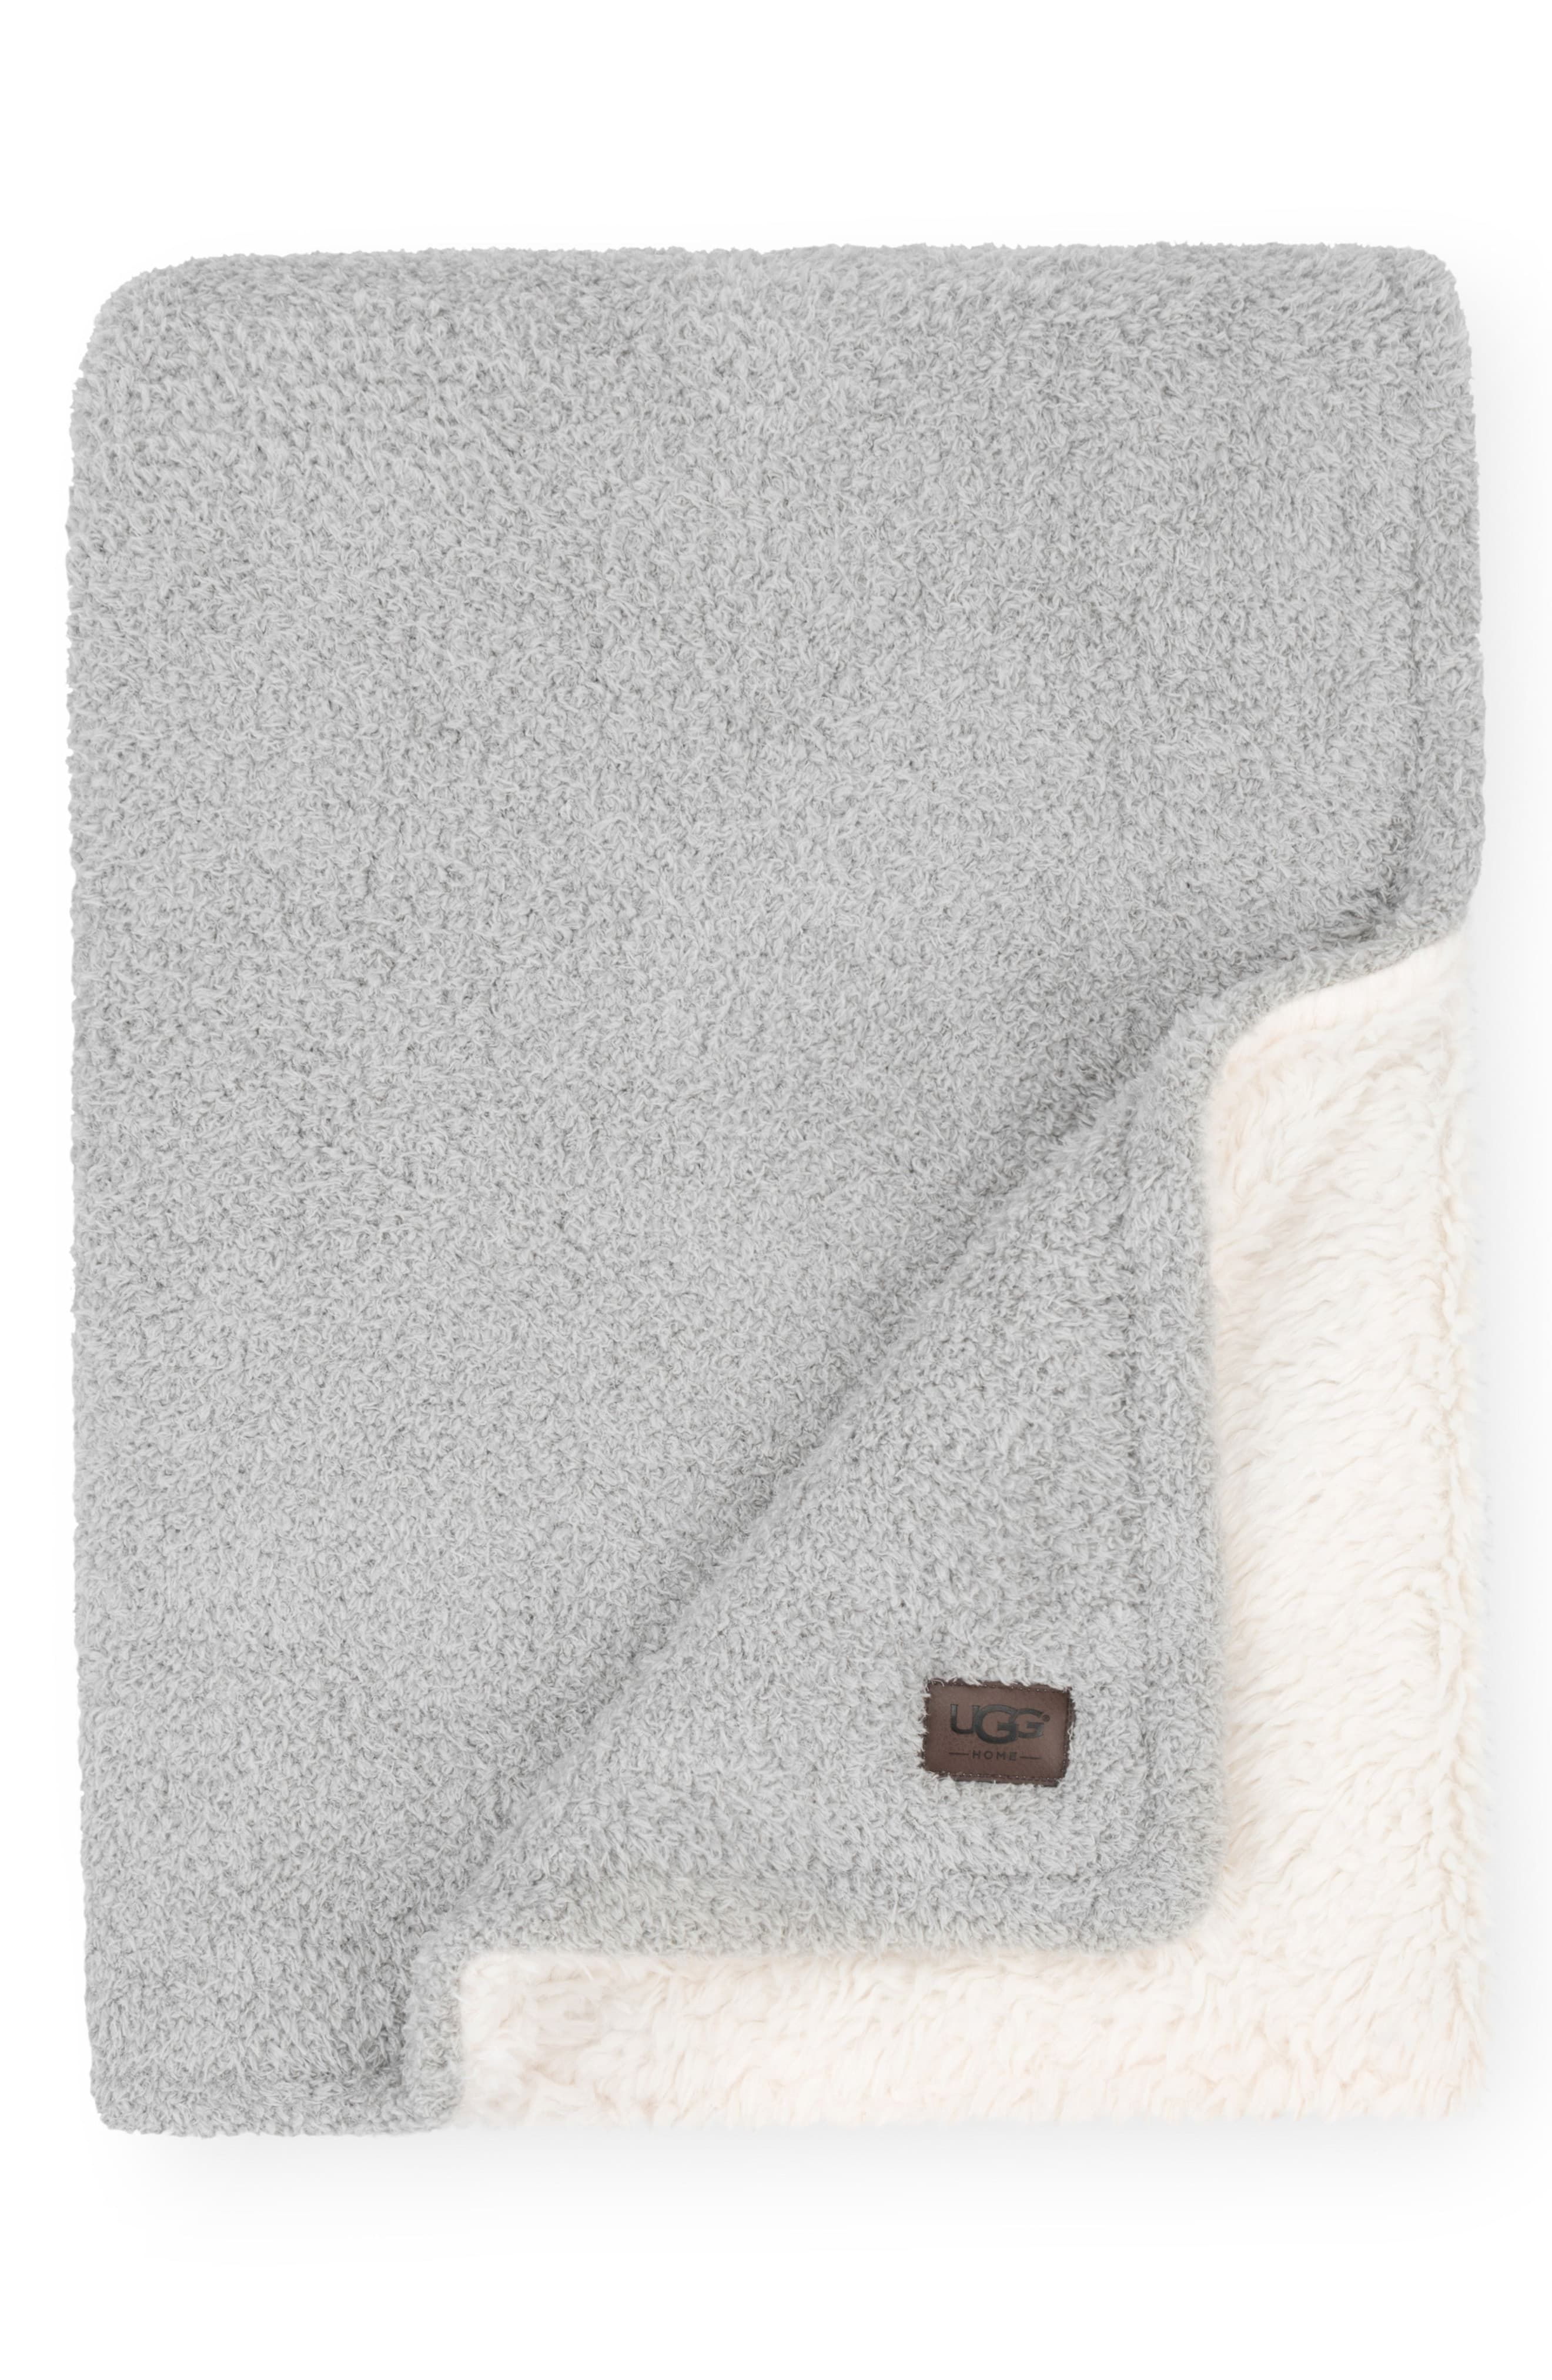 f78b23e69e5 Ugg Ana Faux Shearling Throw, Size One Size - White in 2019 ...